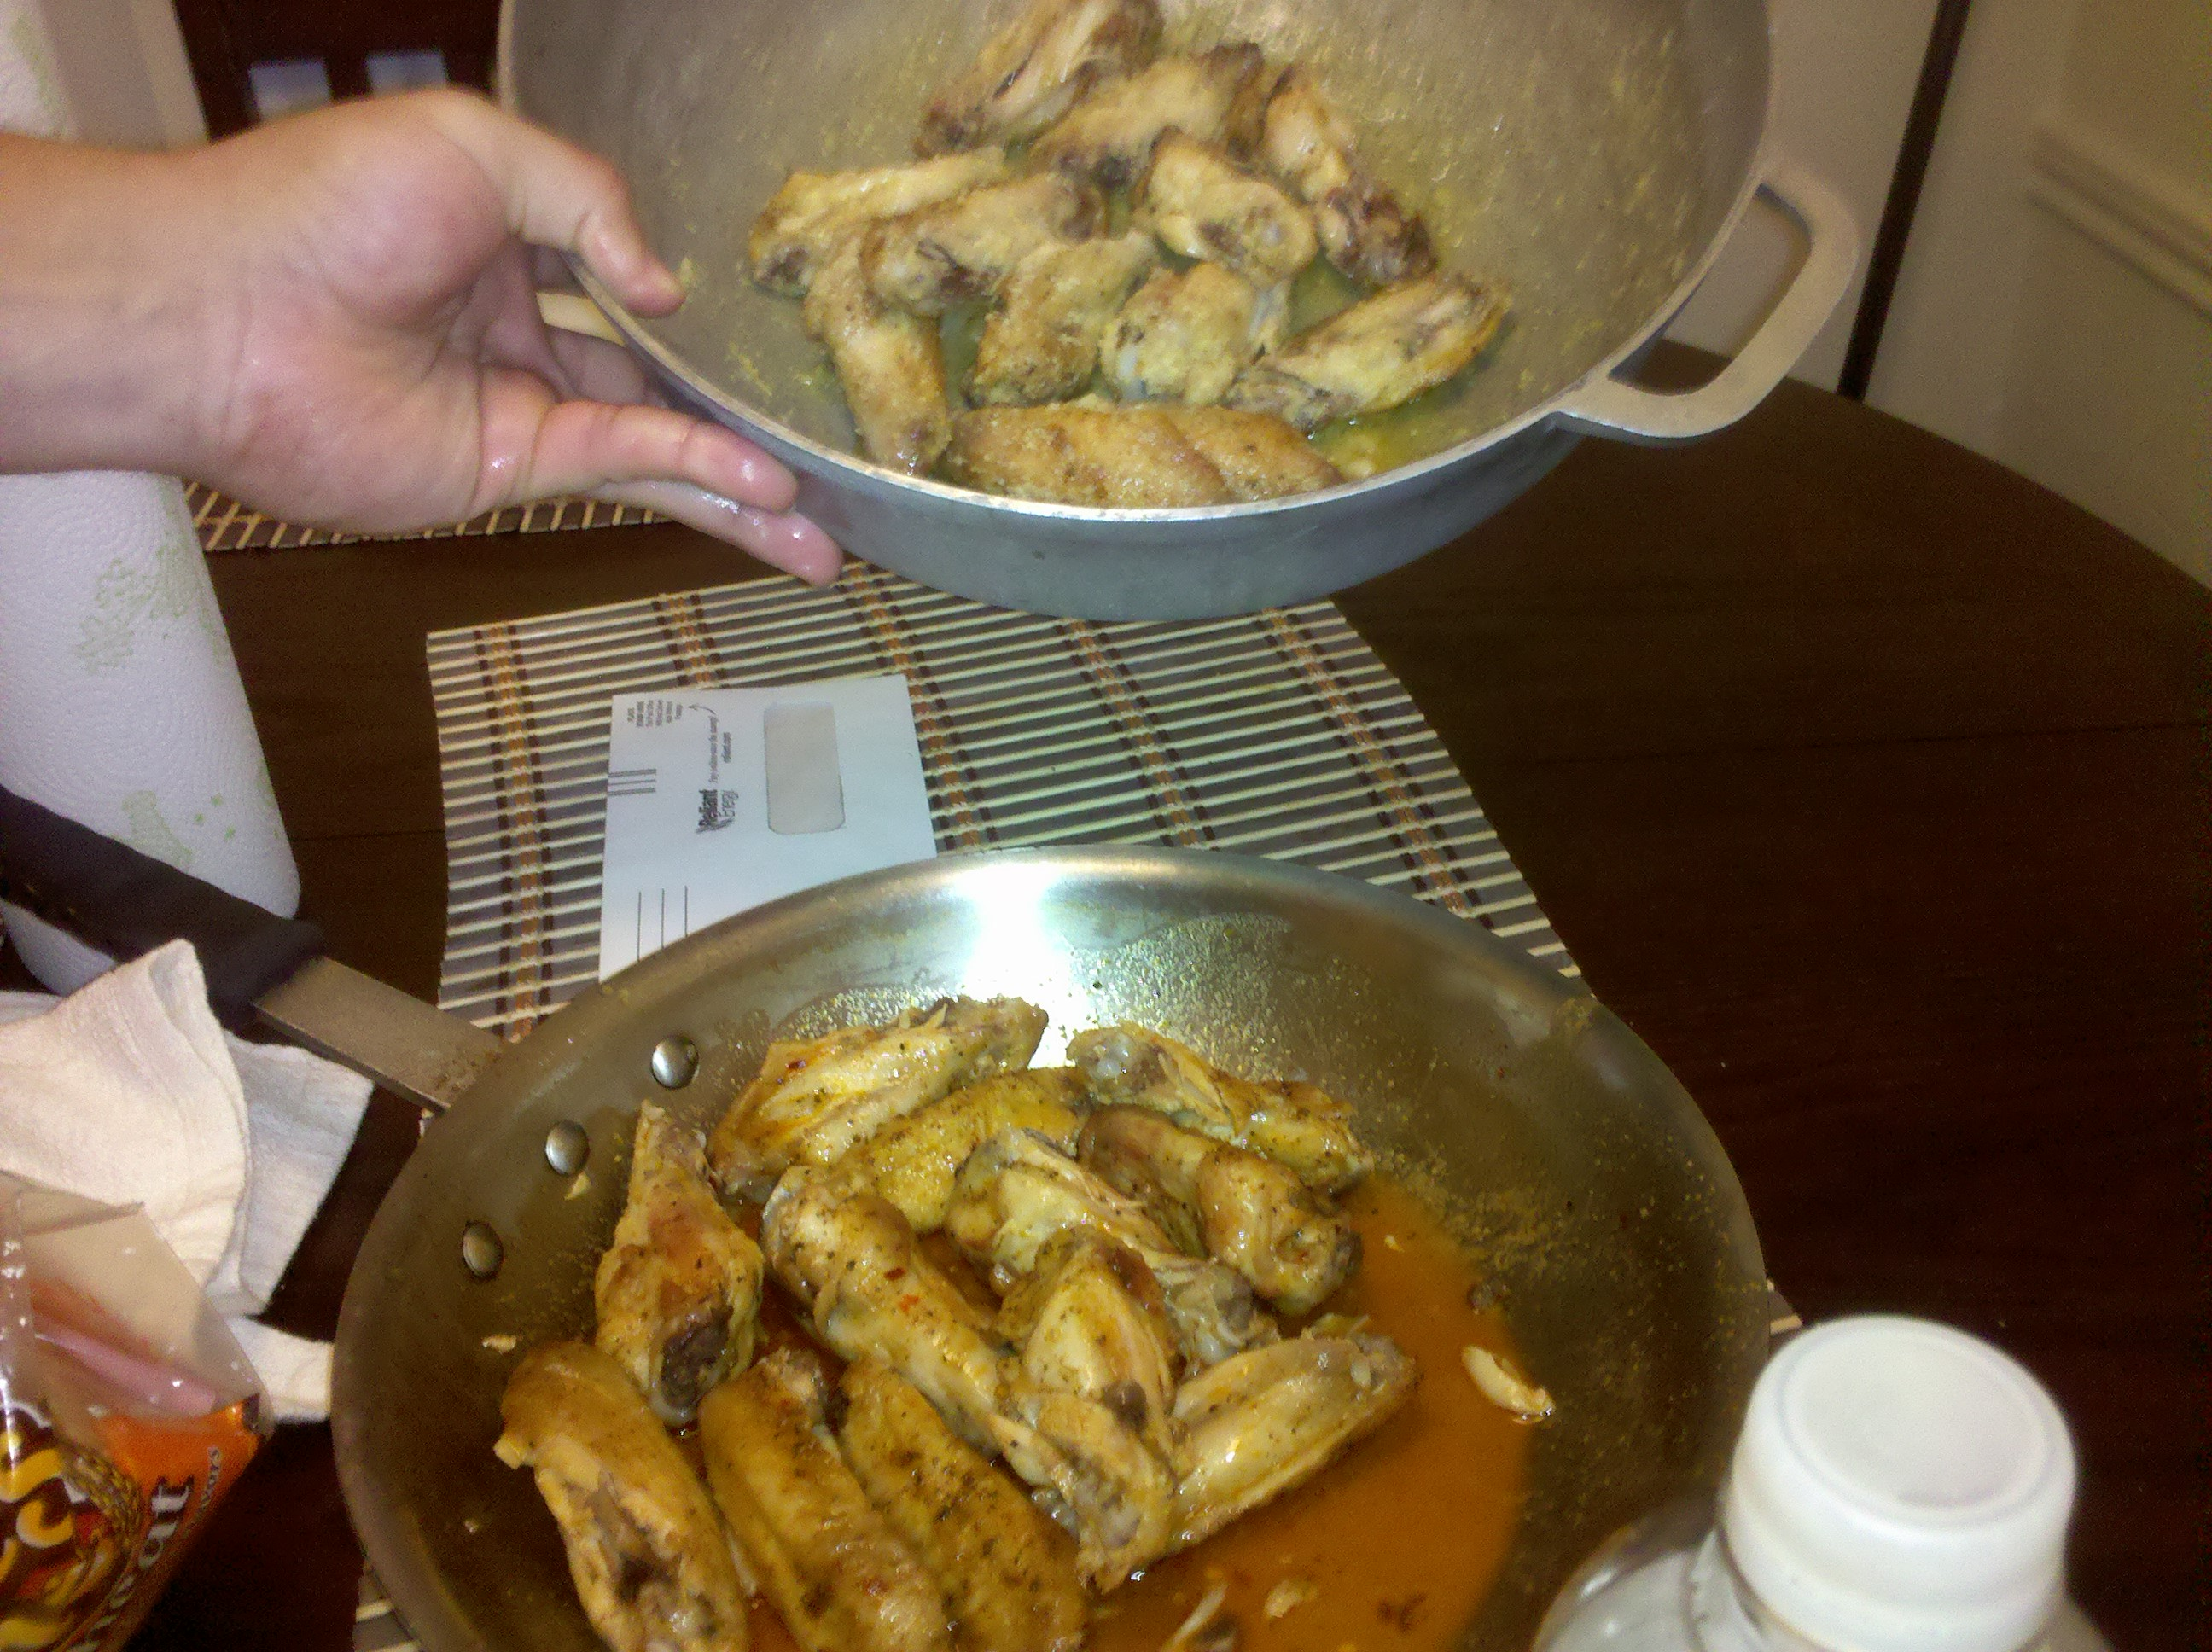 Drews :: homemade wings ...Lemon pepper hot and Garlic Parmesan. Beer not pictured lol